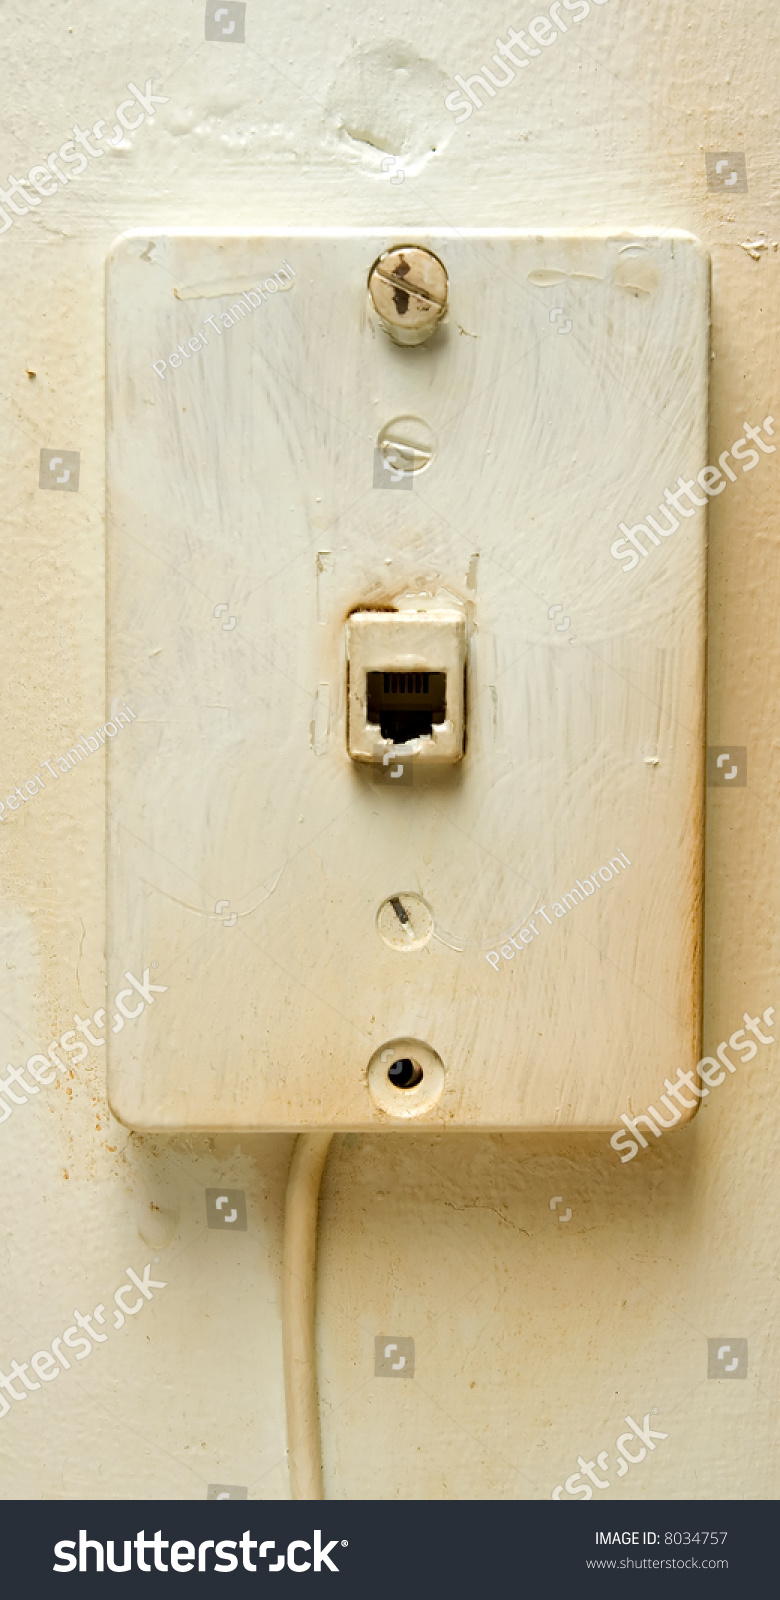 medium resolution of an old analog phone jack on a discolored wall